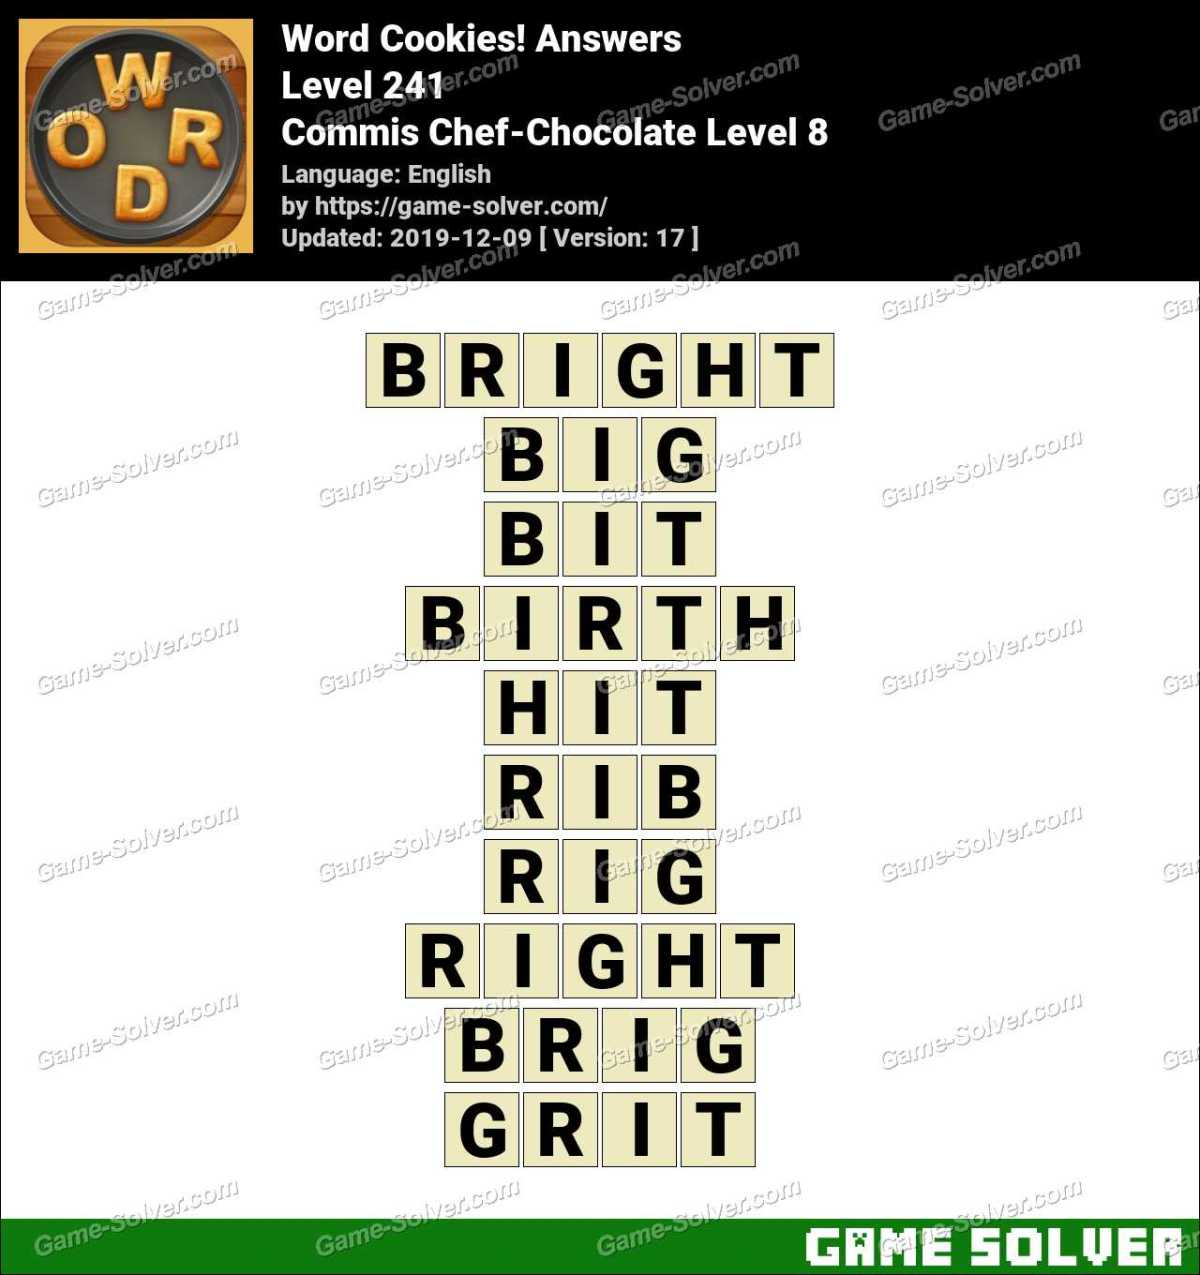 Word Cookies Commis Chef-Chocolate Level 8 Answers